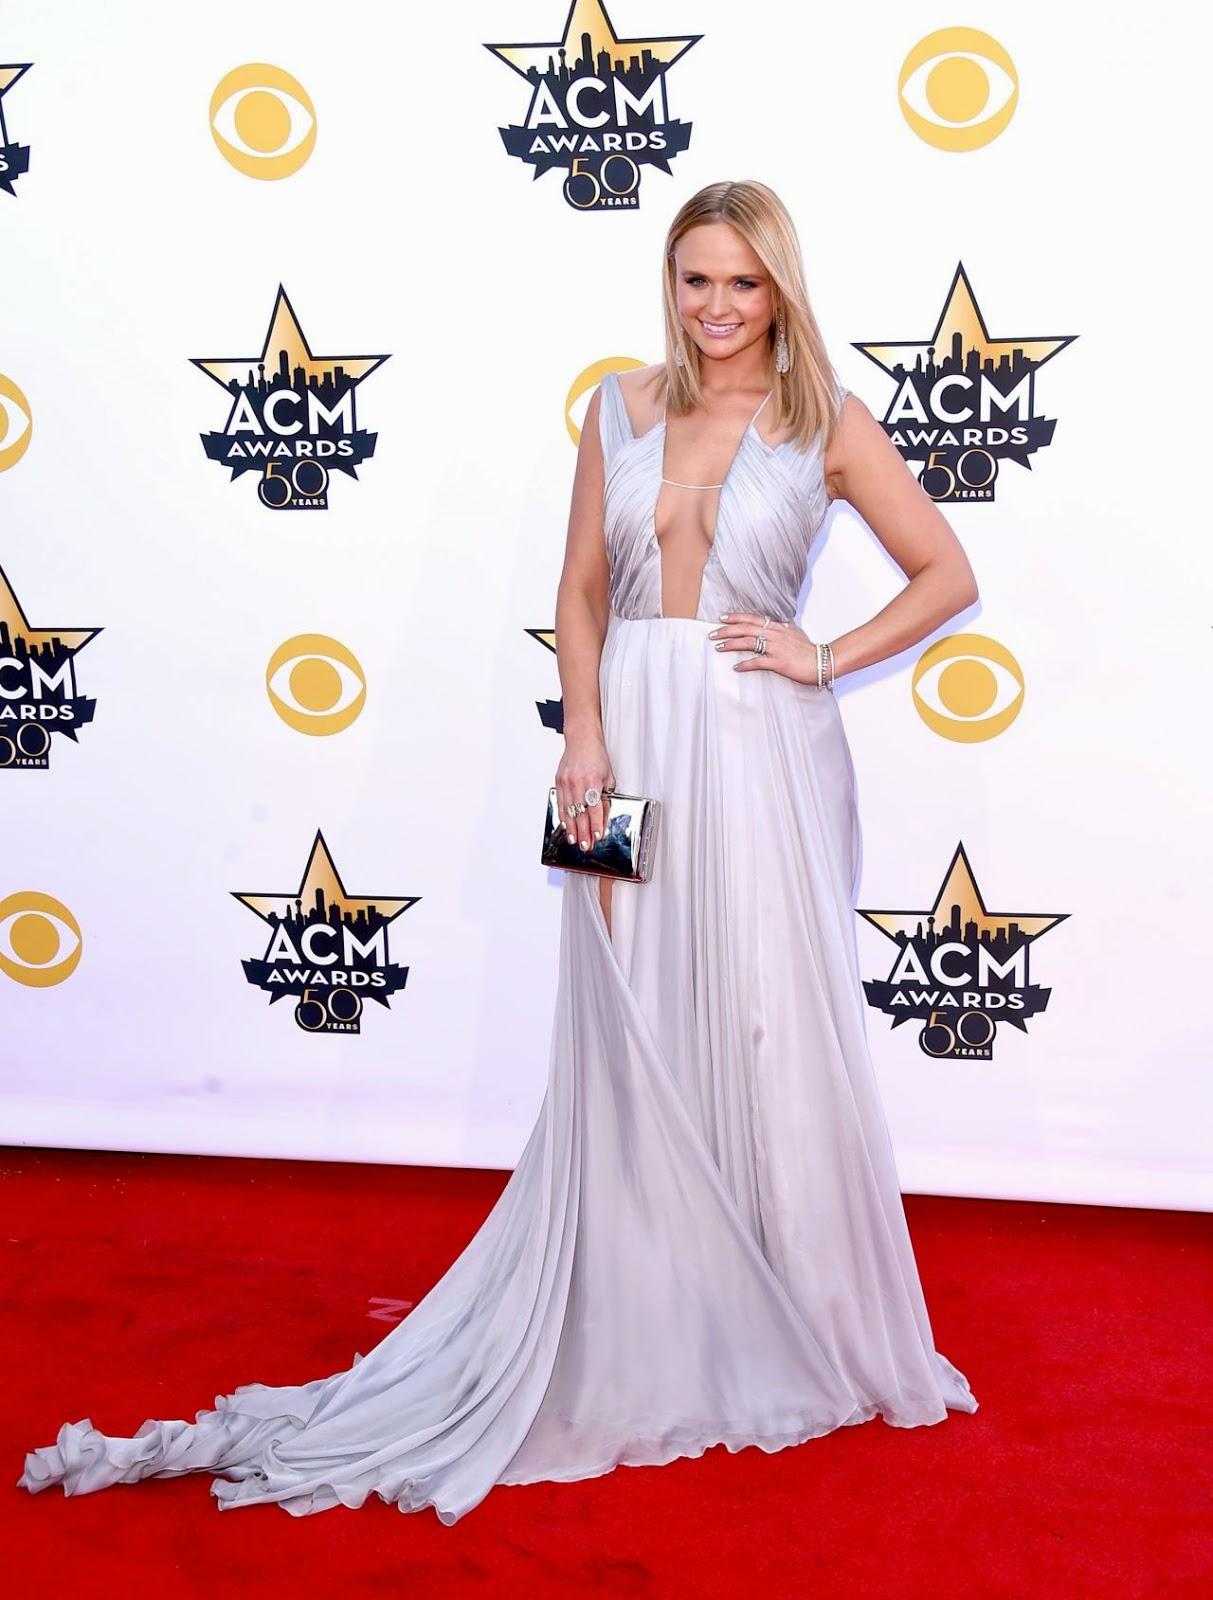 Miranda Lambert flashes cleavage at the 2015 ACM Awards